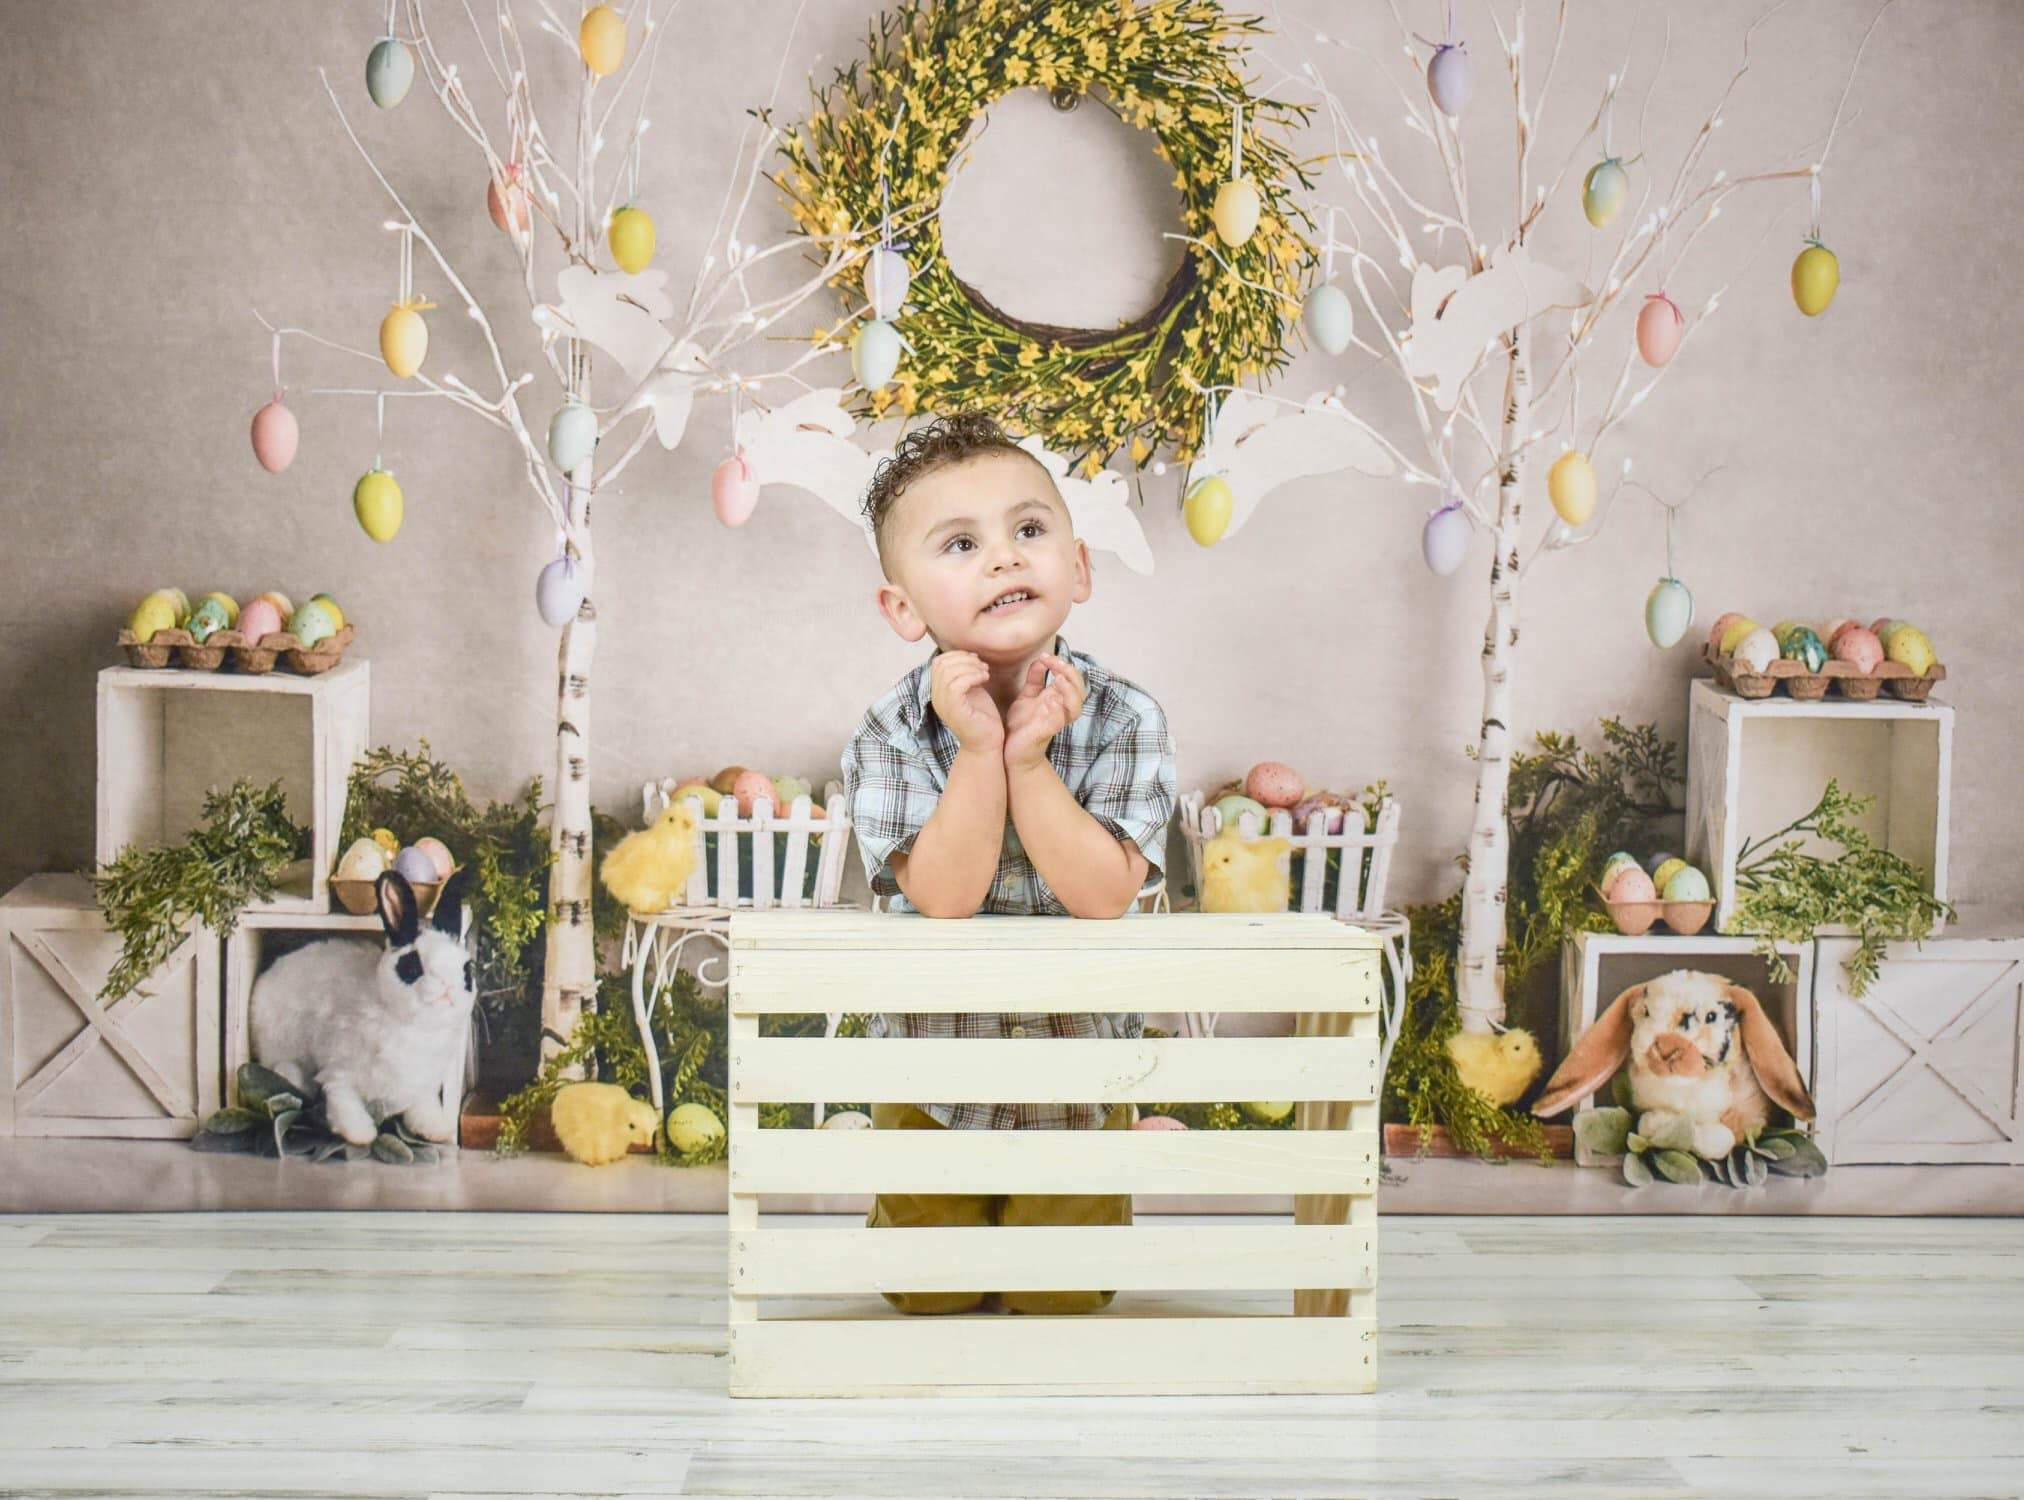 Load image into Gallery viewer, Katebackdrop:Kate Easter Egg Trees and Bunnies Backdrop Designed By Mandy Ringe Photography